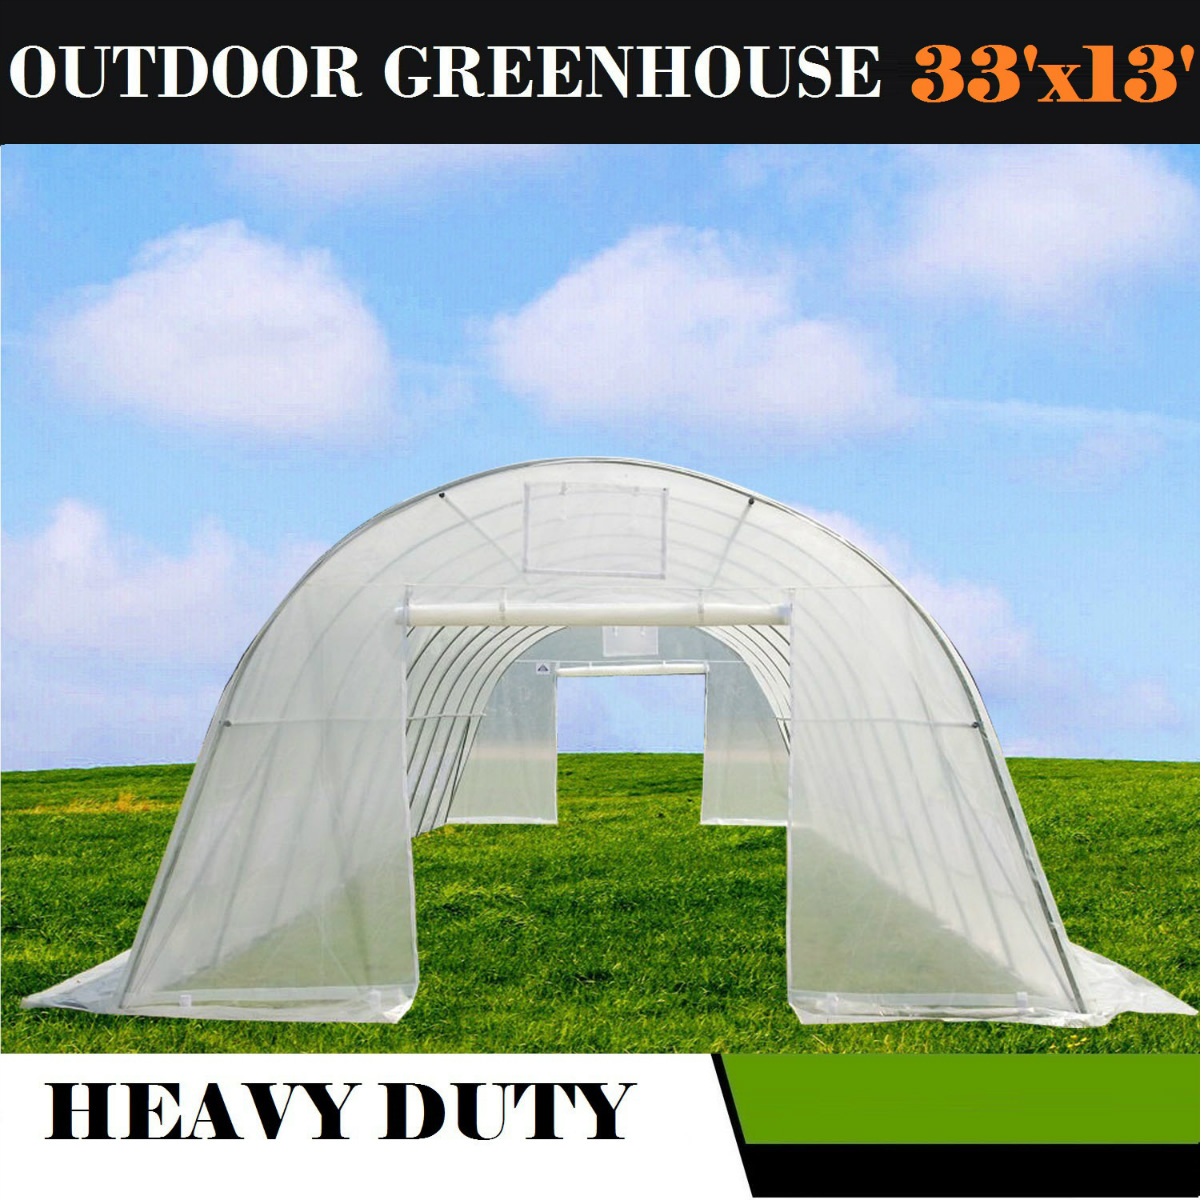 33'x13' Clear Walk-In Greenhouse Hot House By DELTA Canopies by WPIC